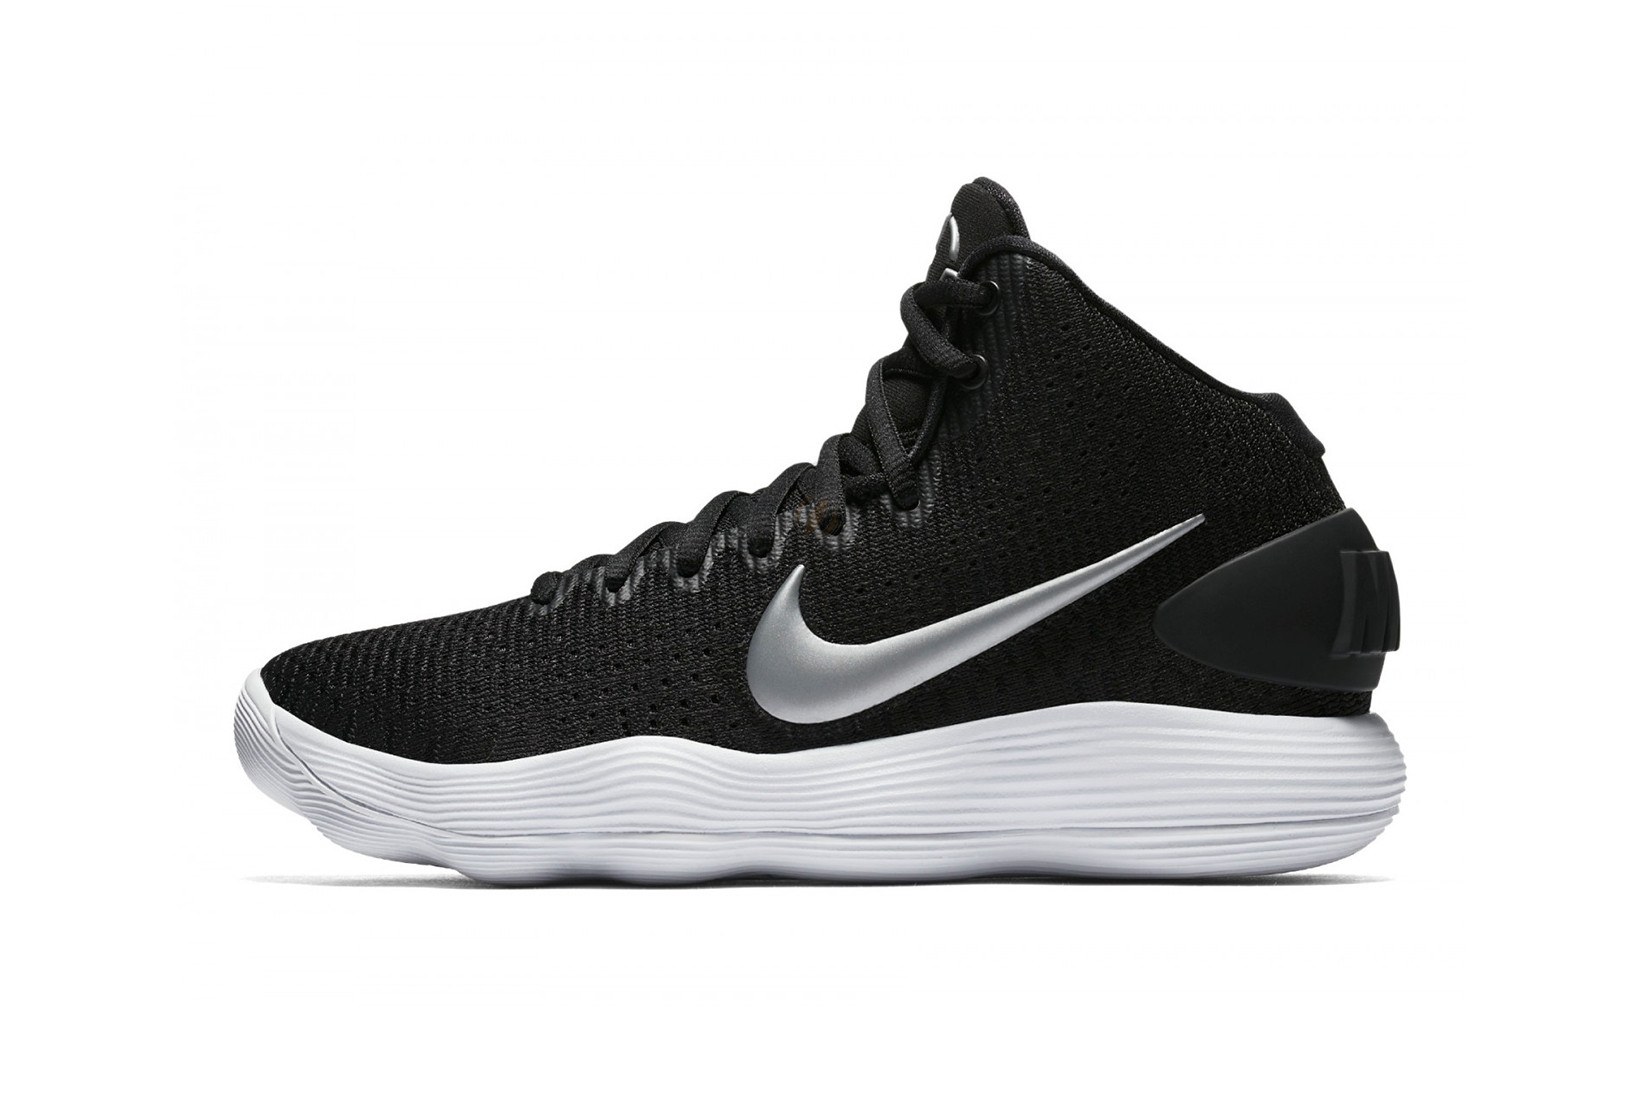 Nike Latest Hyperdunk Is the NBA's Most